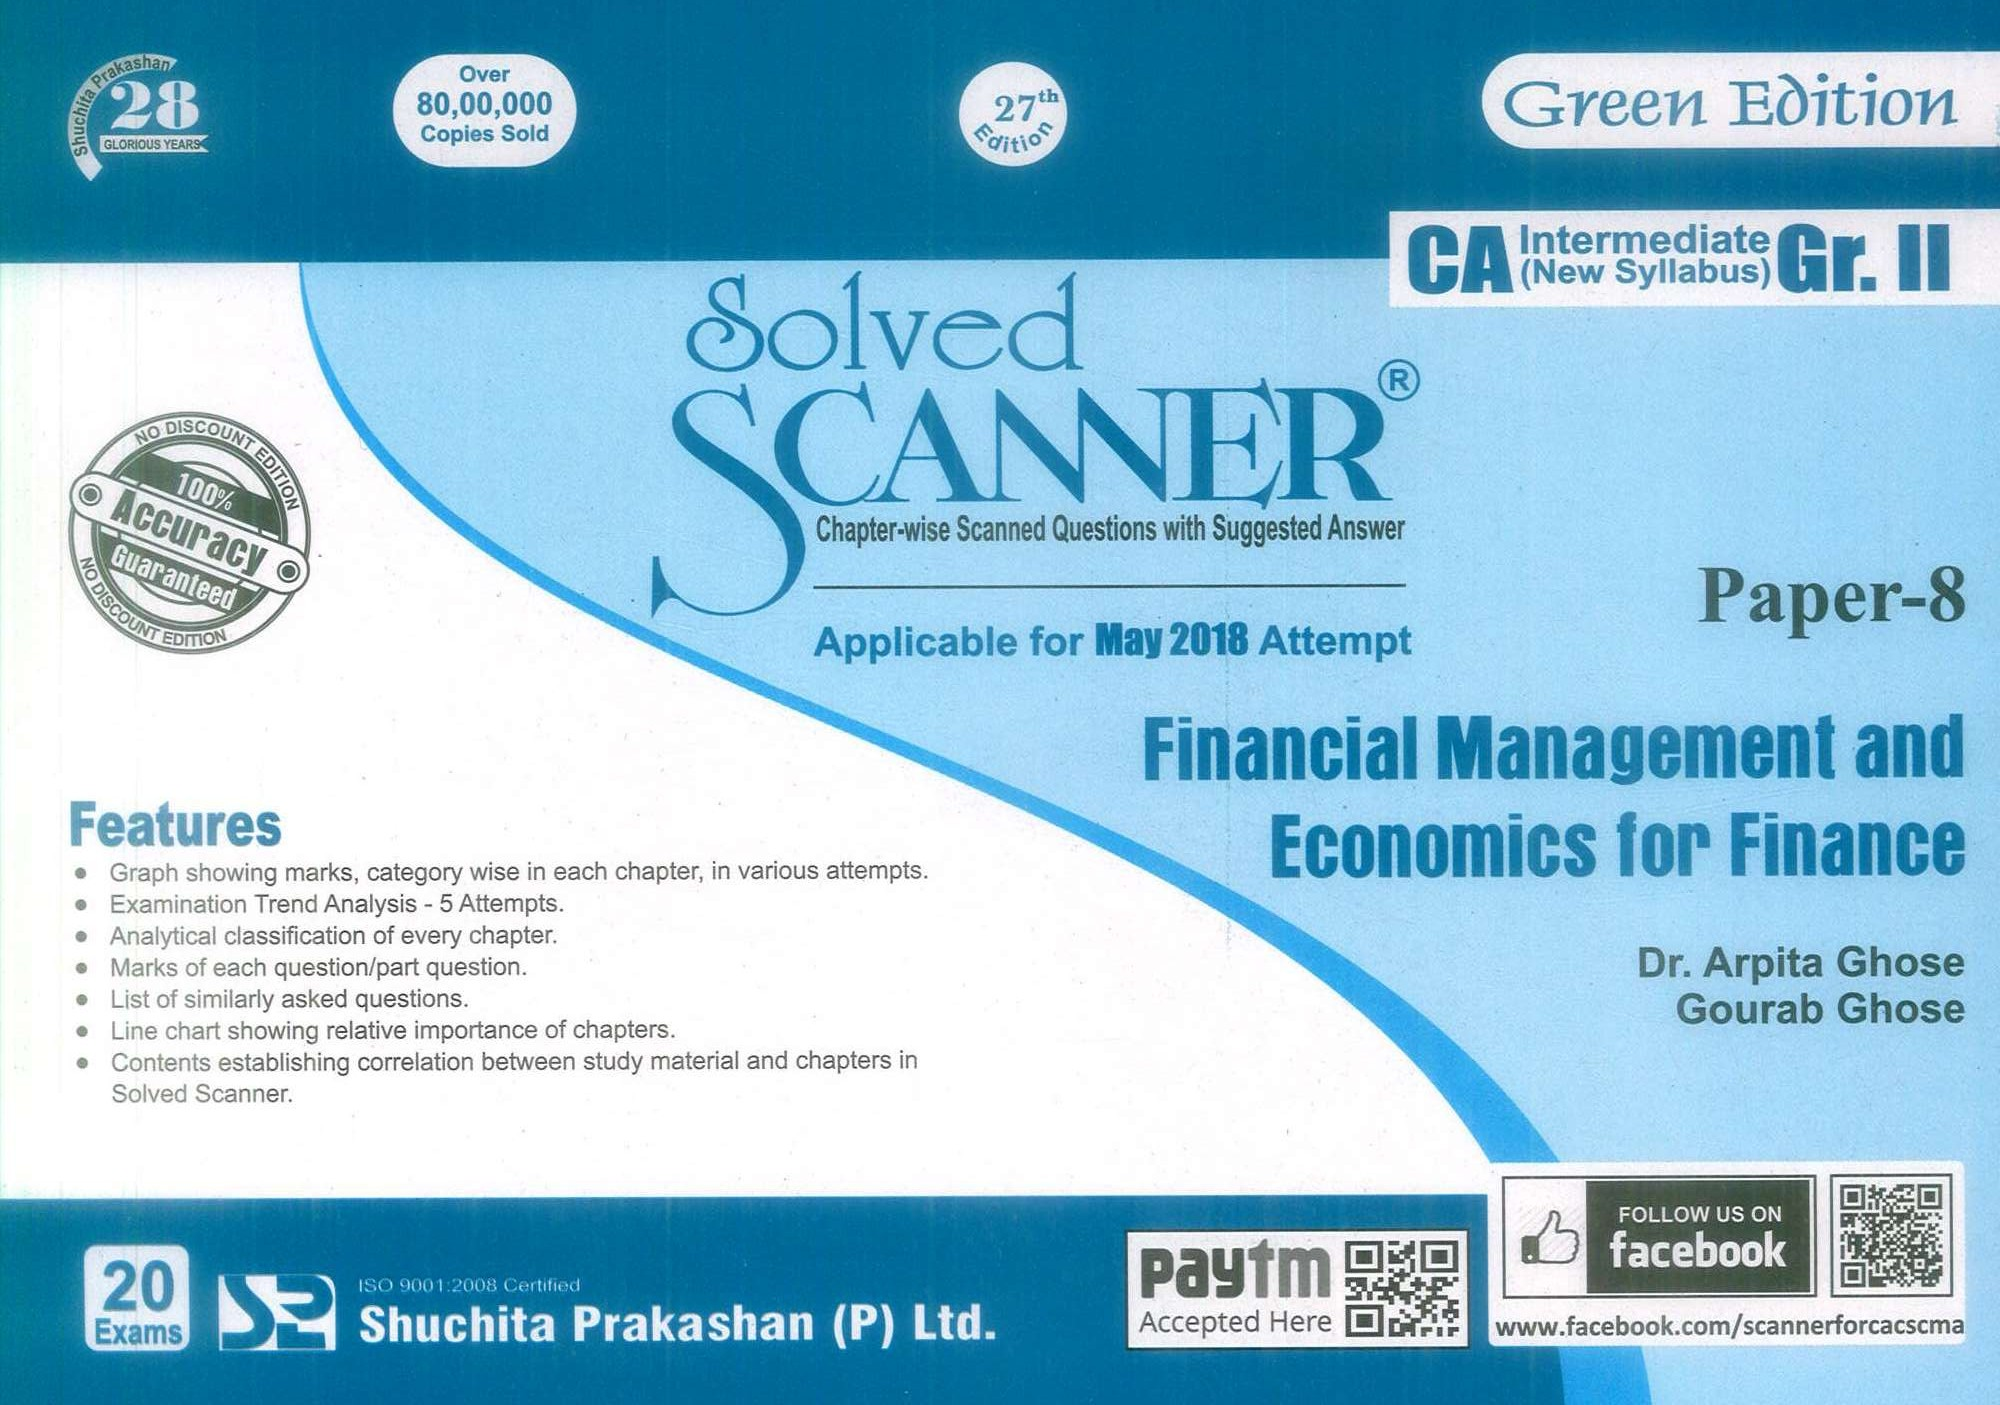 Shuchita Prakashan Solved Scanner CA Inter Group II (New Syllabus) Paper-8 Financial Management and Economics for Finance By Arpita Ghose and Gourab Ghose Applicable for May 2018 Exam